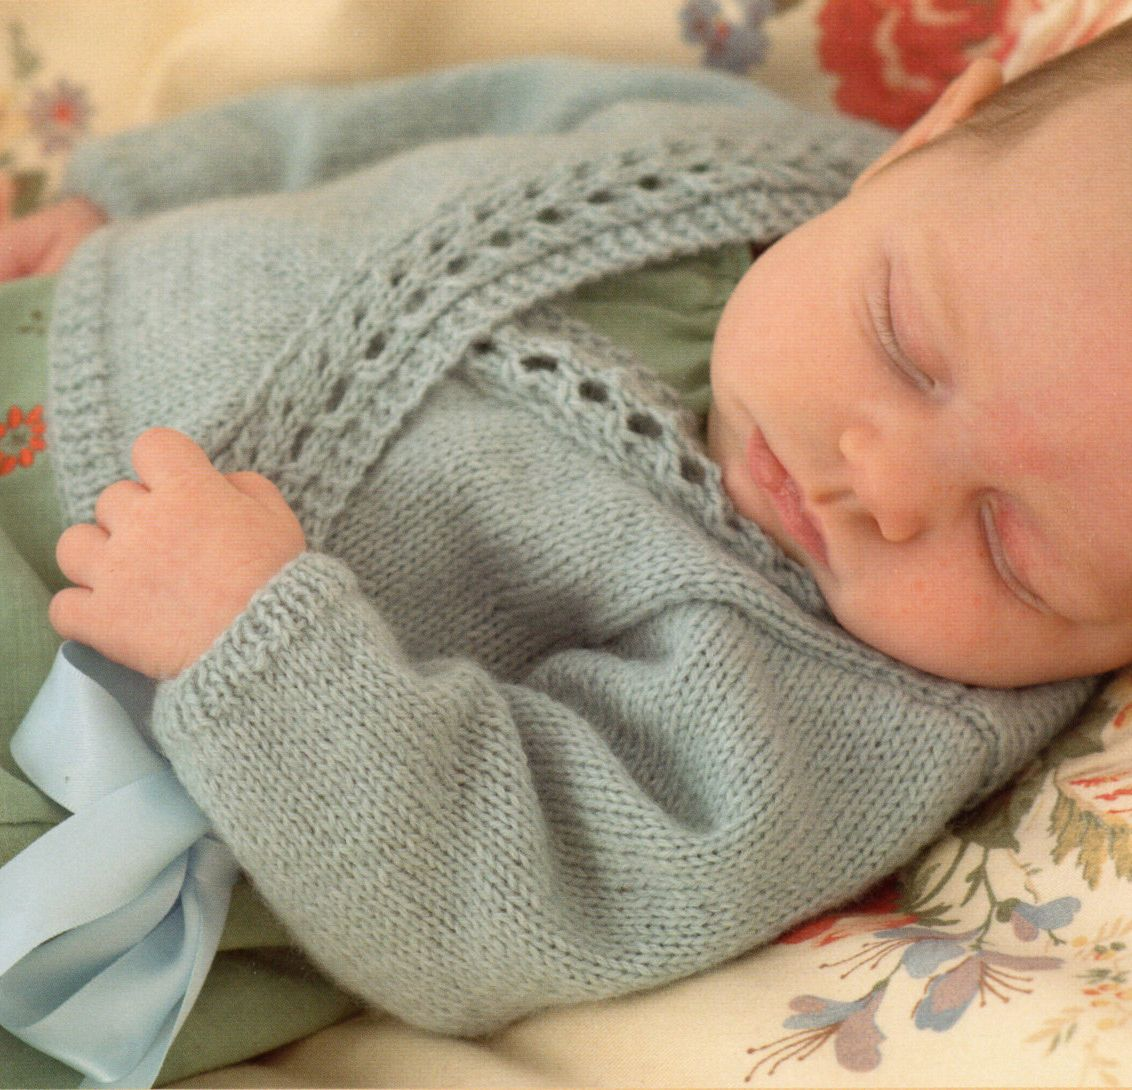 Knitting Pattern Wrap Over Cardigan : Knitting Pattern for Baby Wrap Over Cardigan - #ad Lace edged sweater to fit ...